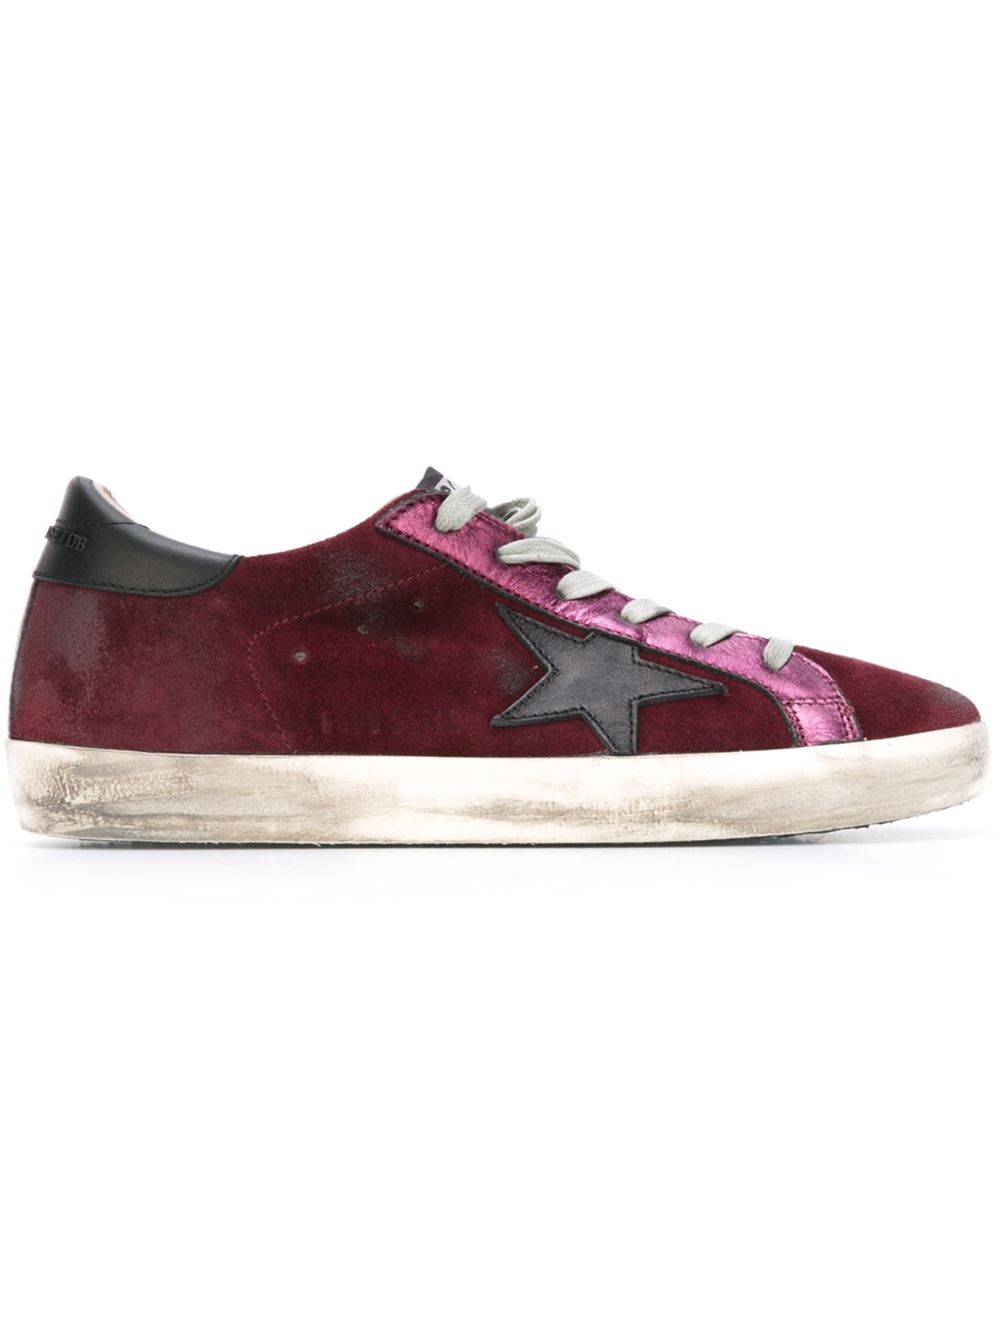 Golden Goose Super Star Sneakers In Maroon Suede With Black Leather Star